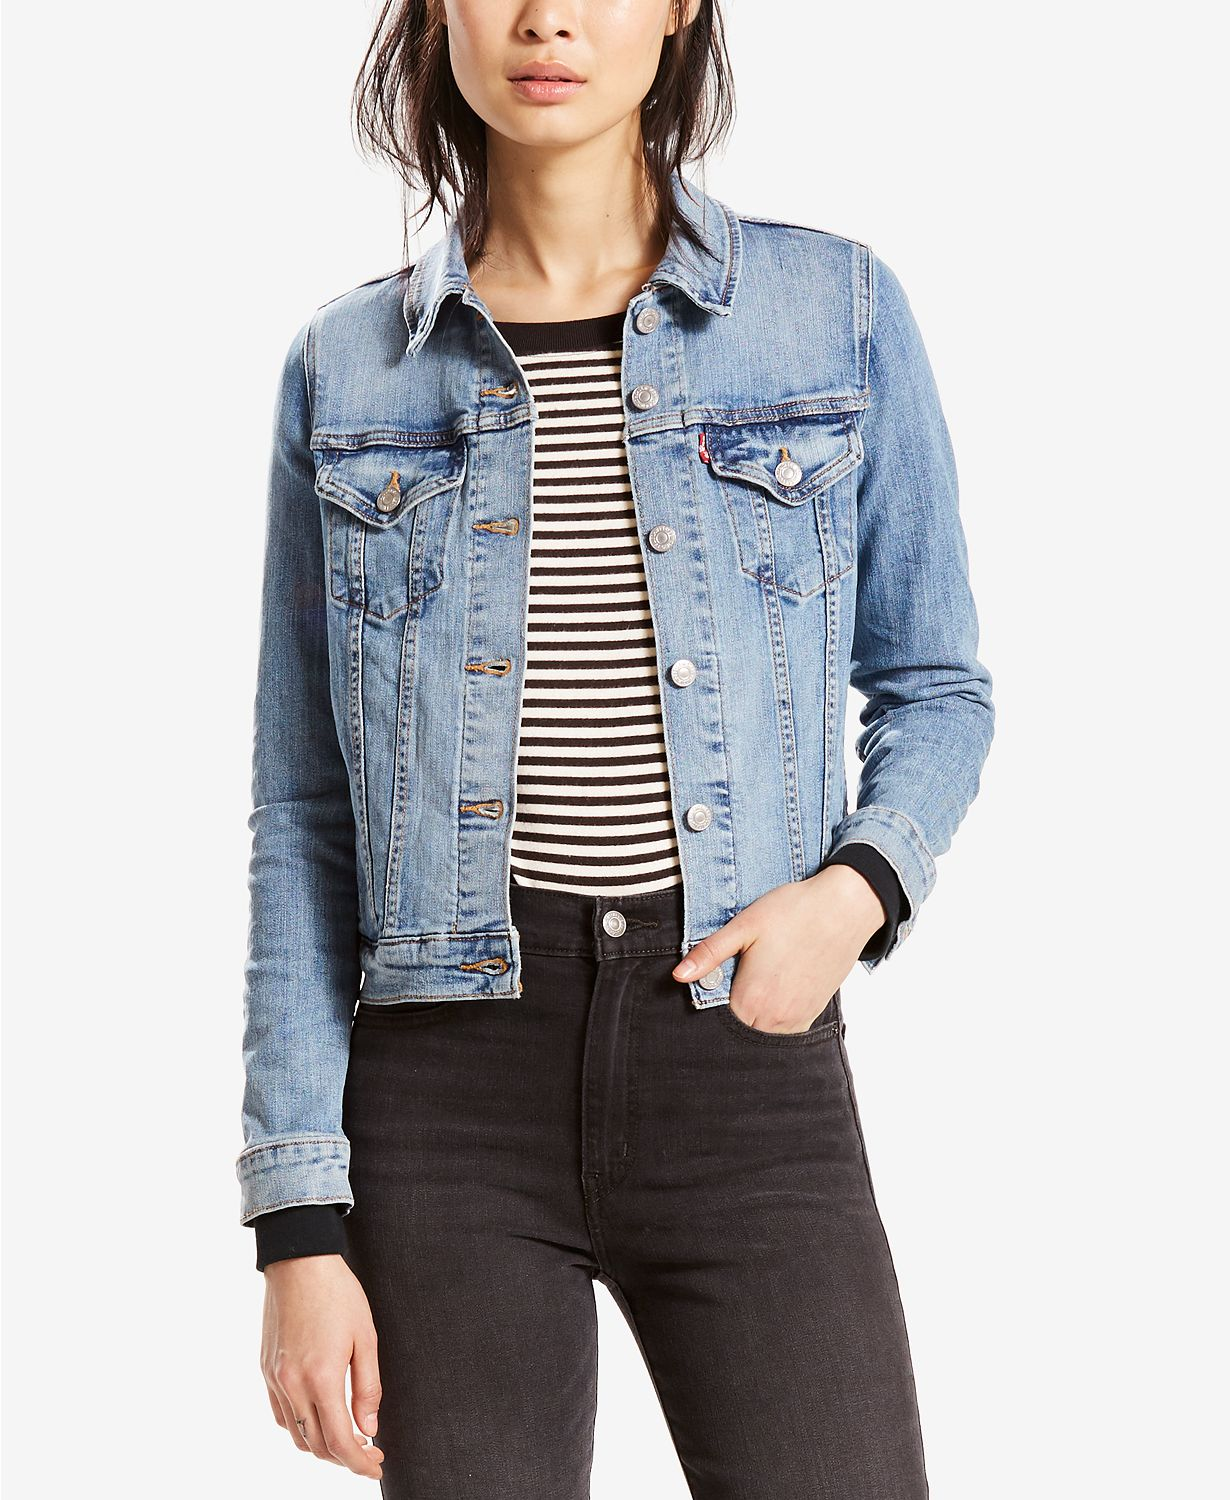 Come discover these Over 50 Fashion: Running Errands Comfy Cute Pieces! Levi's original trucker jacket for women is the perfect layering piece in every season! #fashionover50